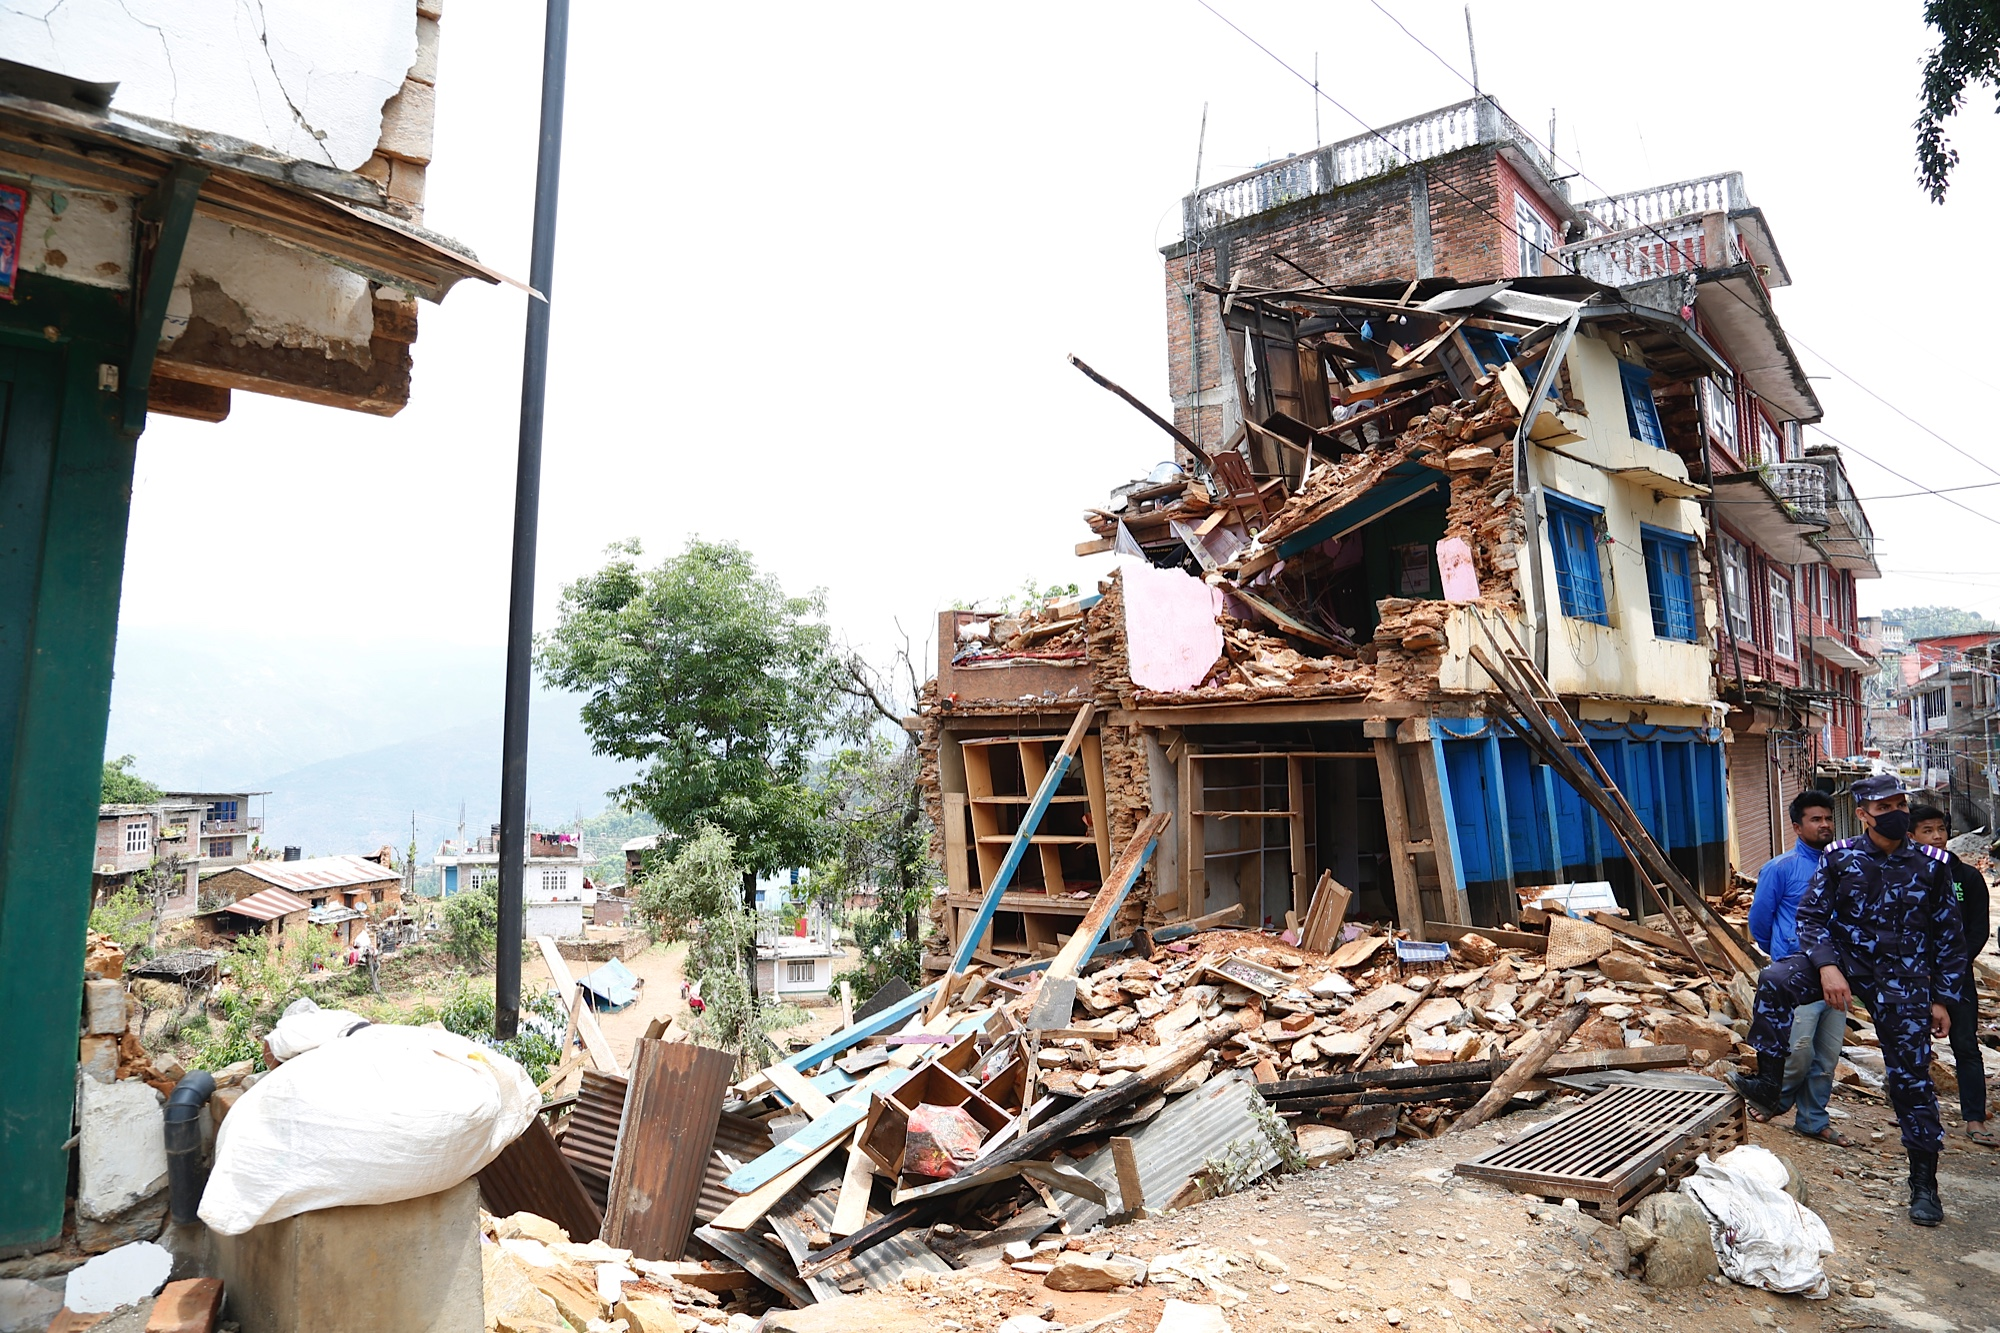 What It's Really Like Traveling in Post-Earthquake Nepal